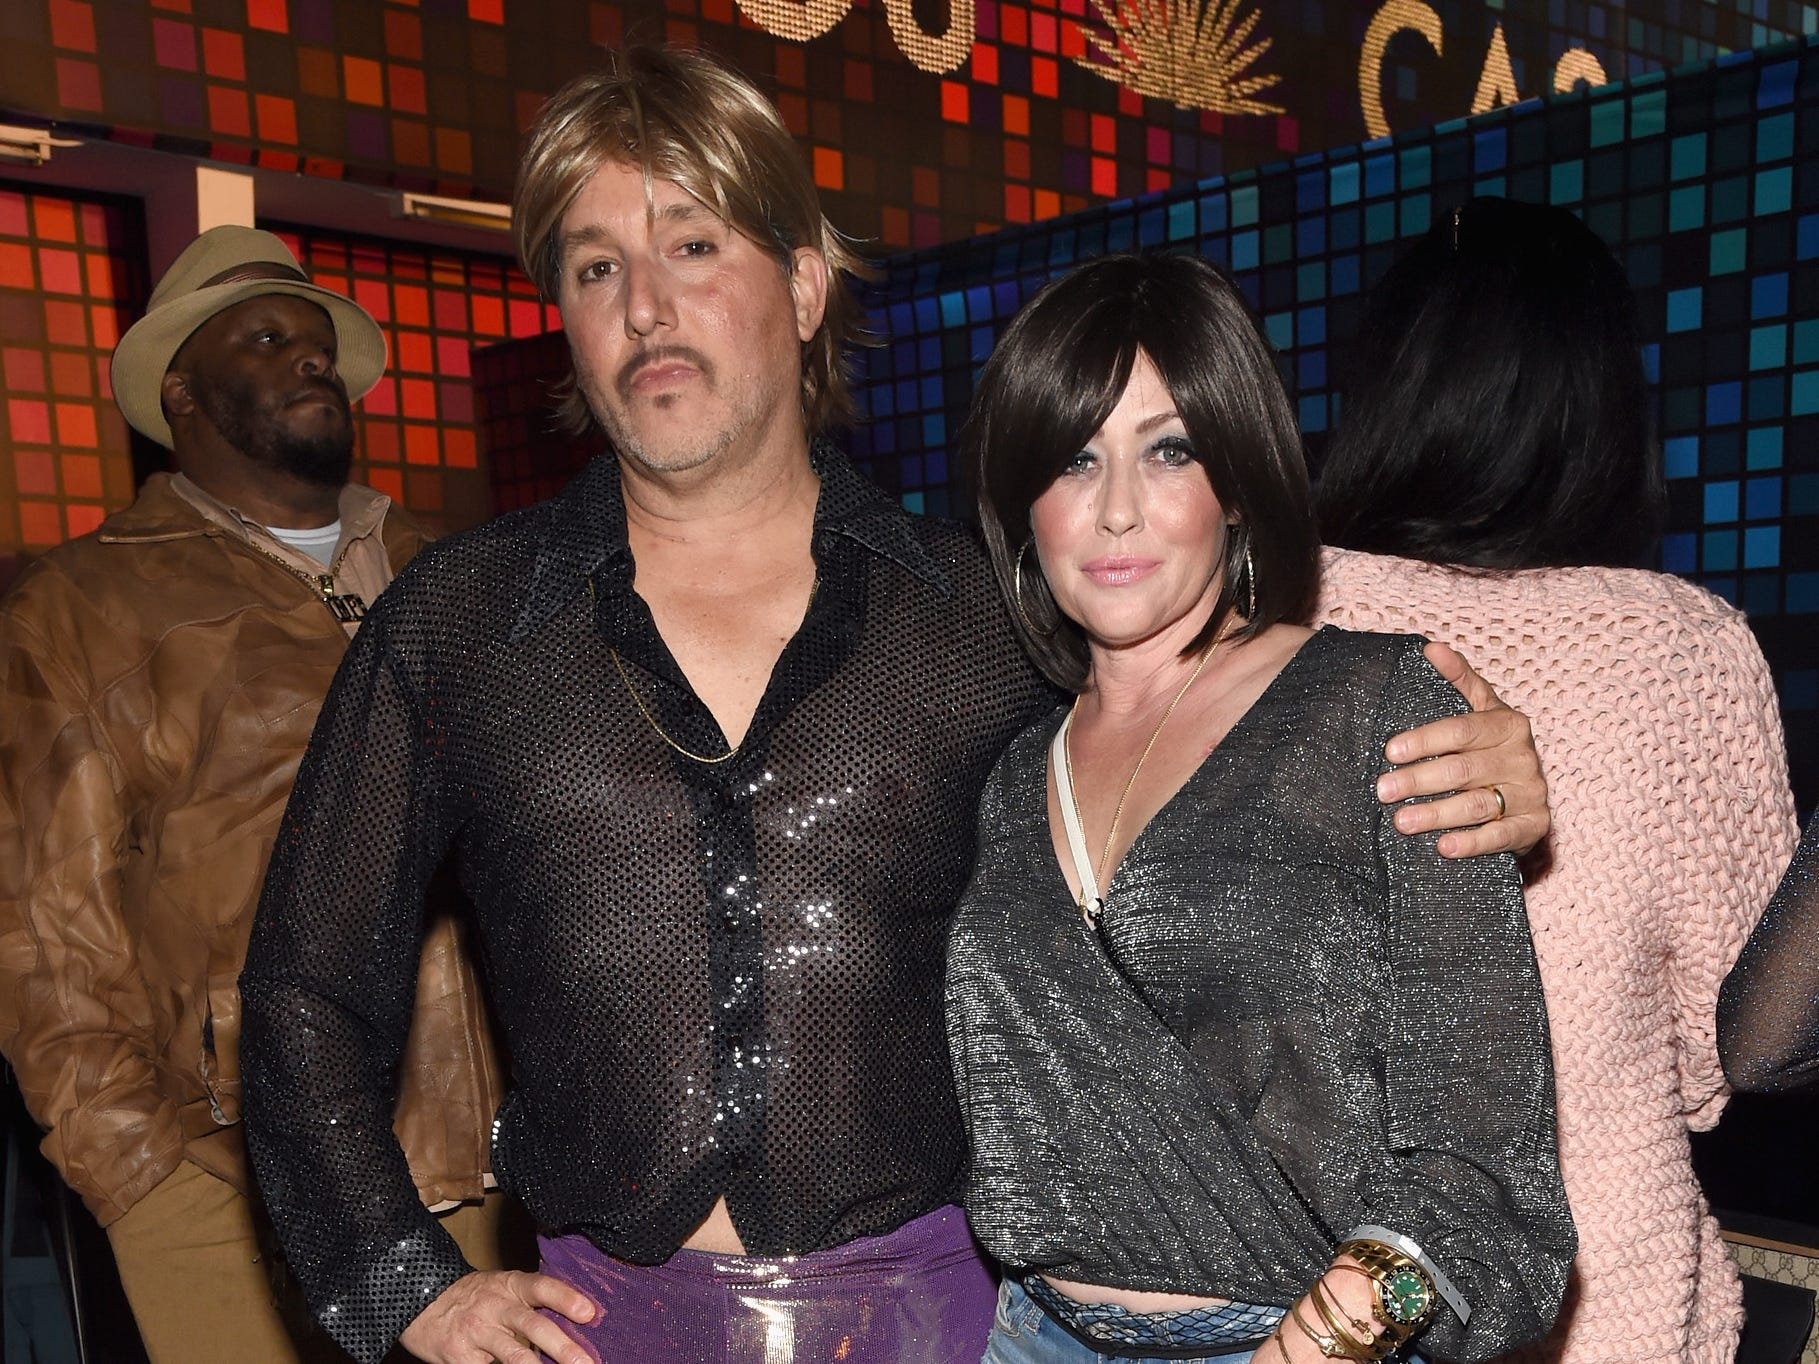 CohenLOS ANGELES, CA - OCTOBER 27:  Kurt Iswarienko and Shannen Doherty attend Casamigos Halloween Party on October 27, 2017 in Los Angeles, California.  (Photo by Michael Kovac/Getty Images for Casamigos Tequila) ORG XMIT: 775038007 ORIG FILE ID: 867296626